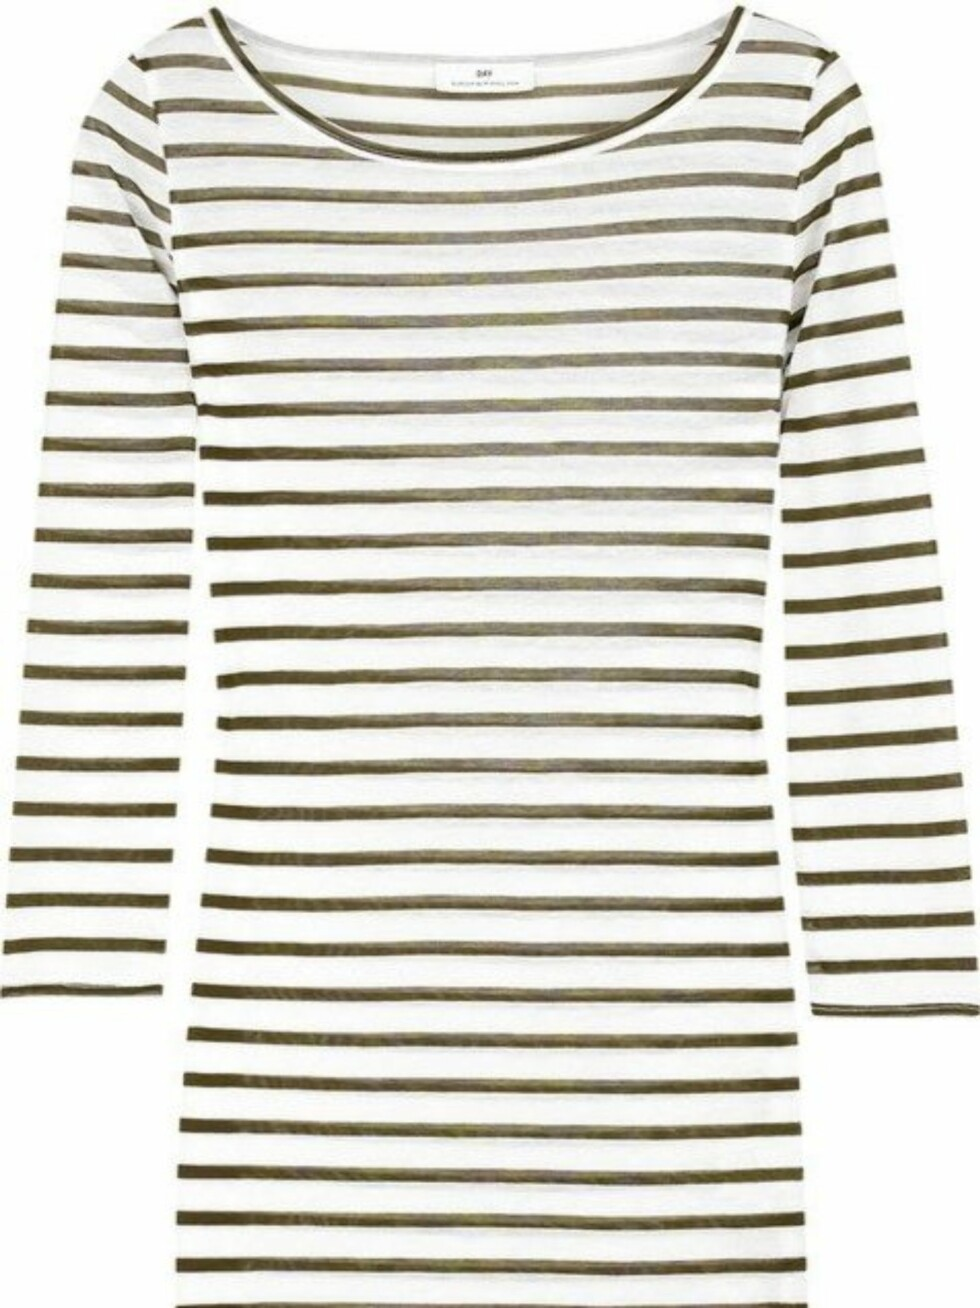 STRIPER ER HOT: Bomullsgenser i sailorstil (kr 550, Day Birger et Mikkelsen/Musthaves.dk).